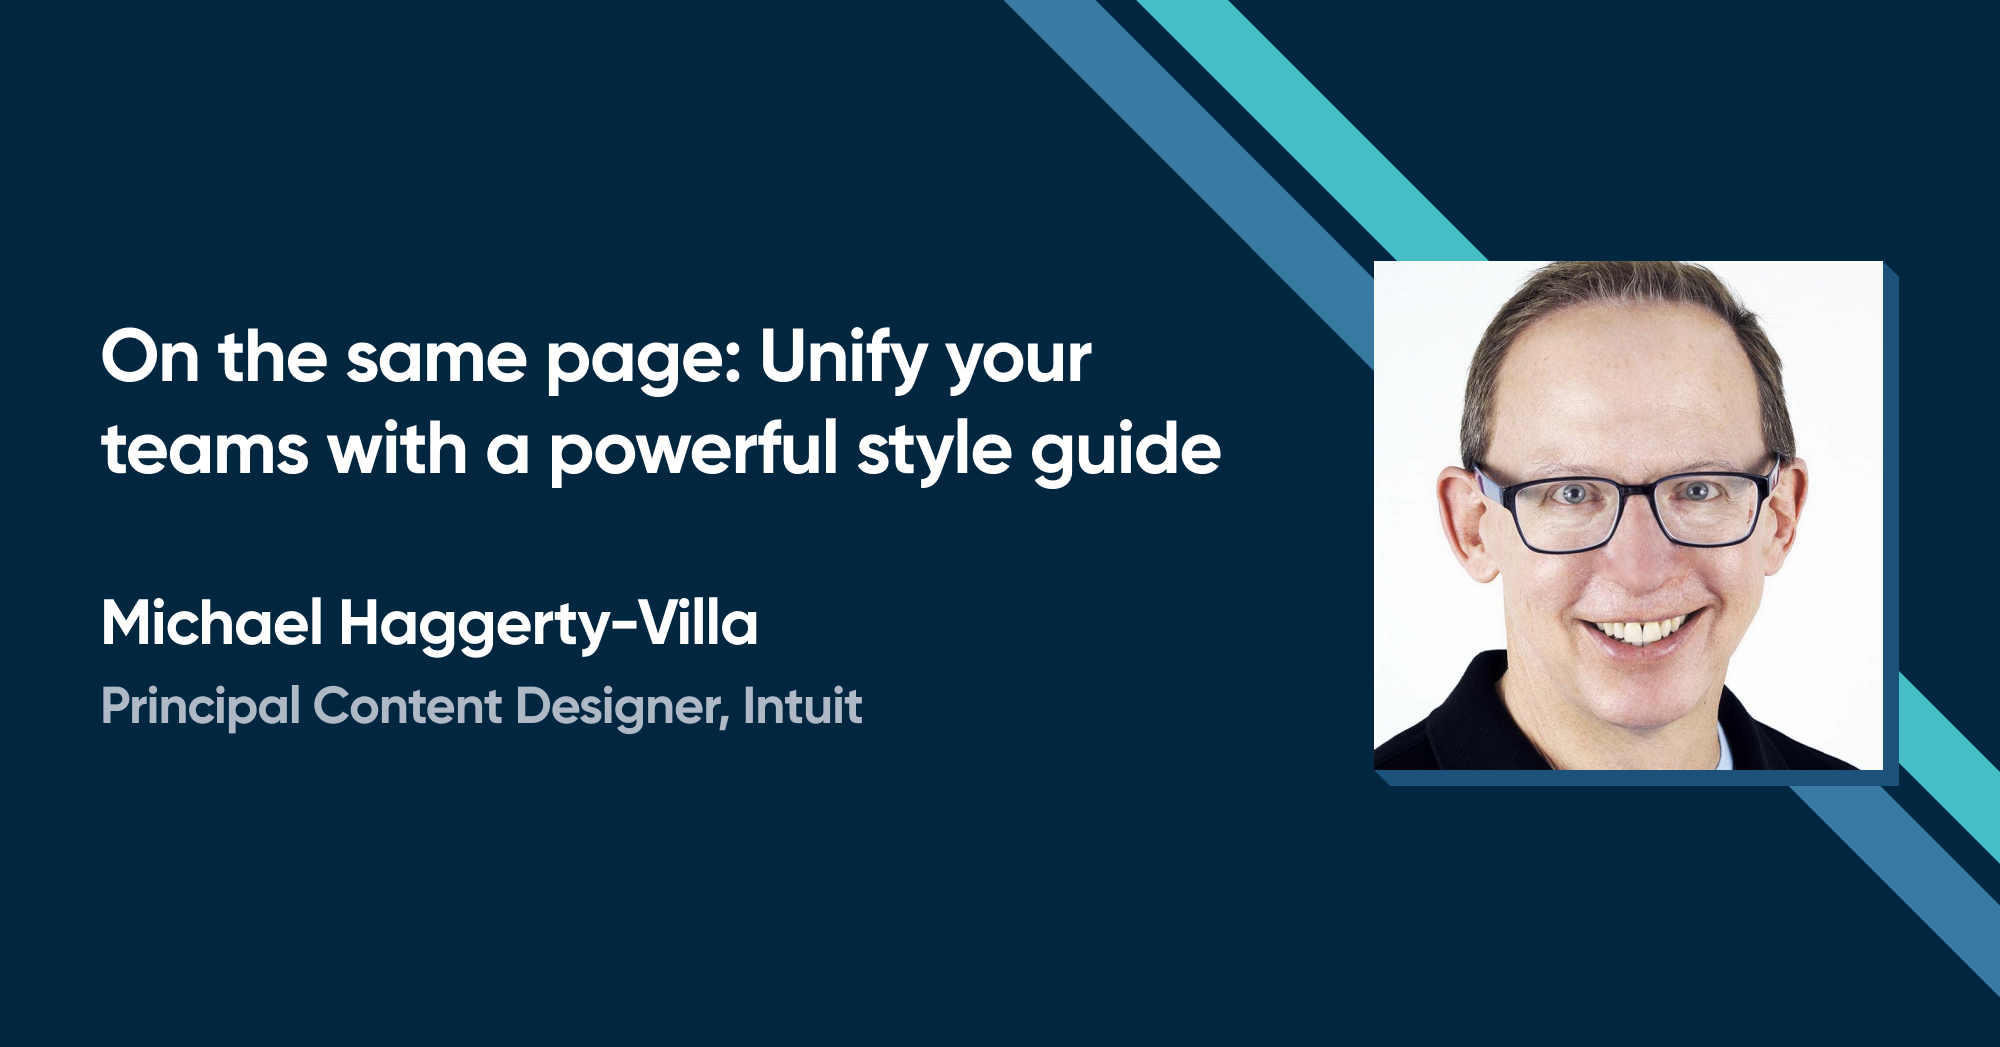 Michael Haggerty Villa - On the same page: Unify your teams with a powerful style guide